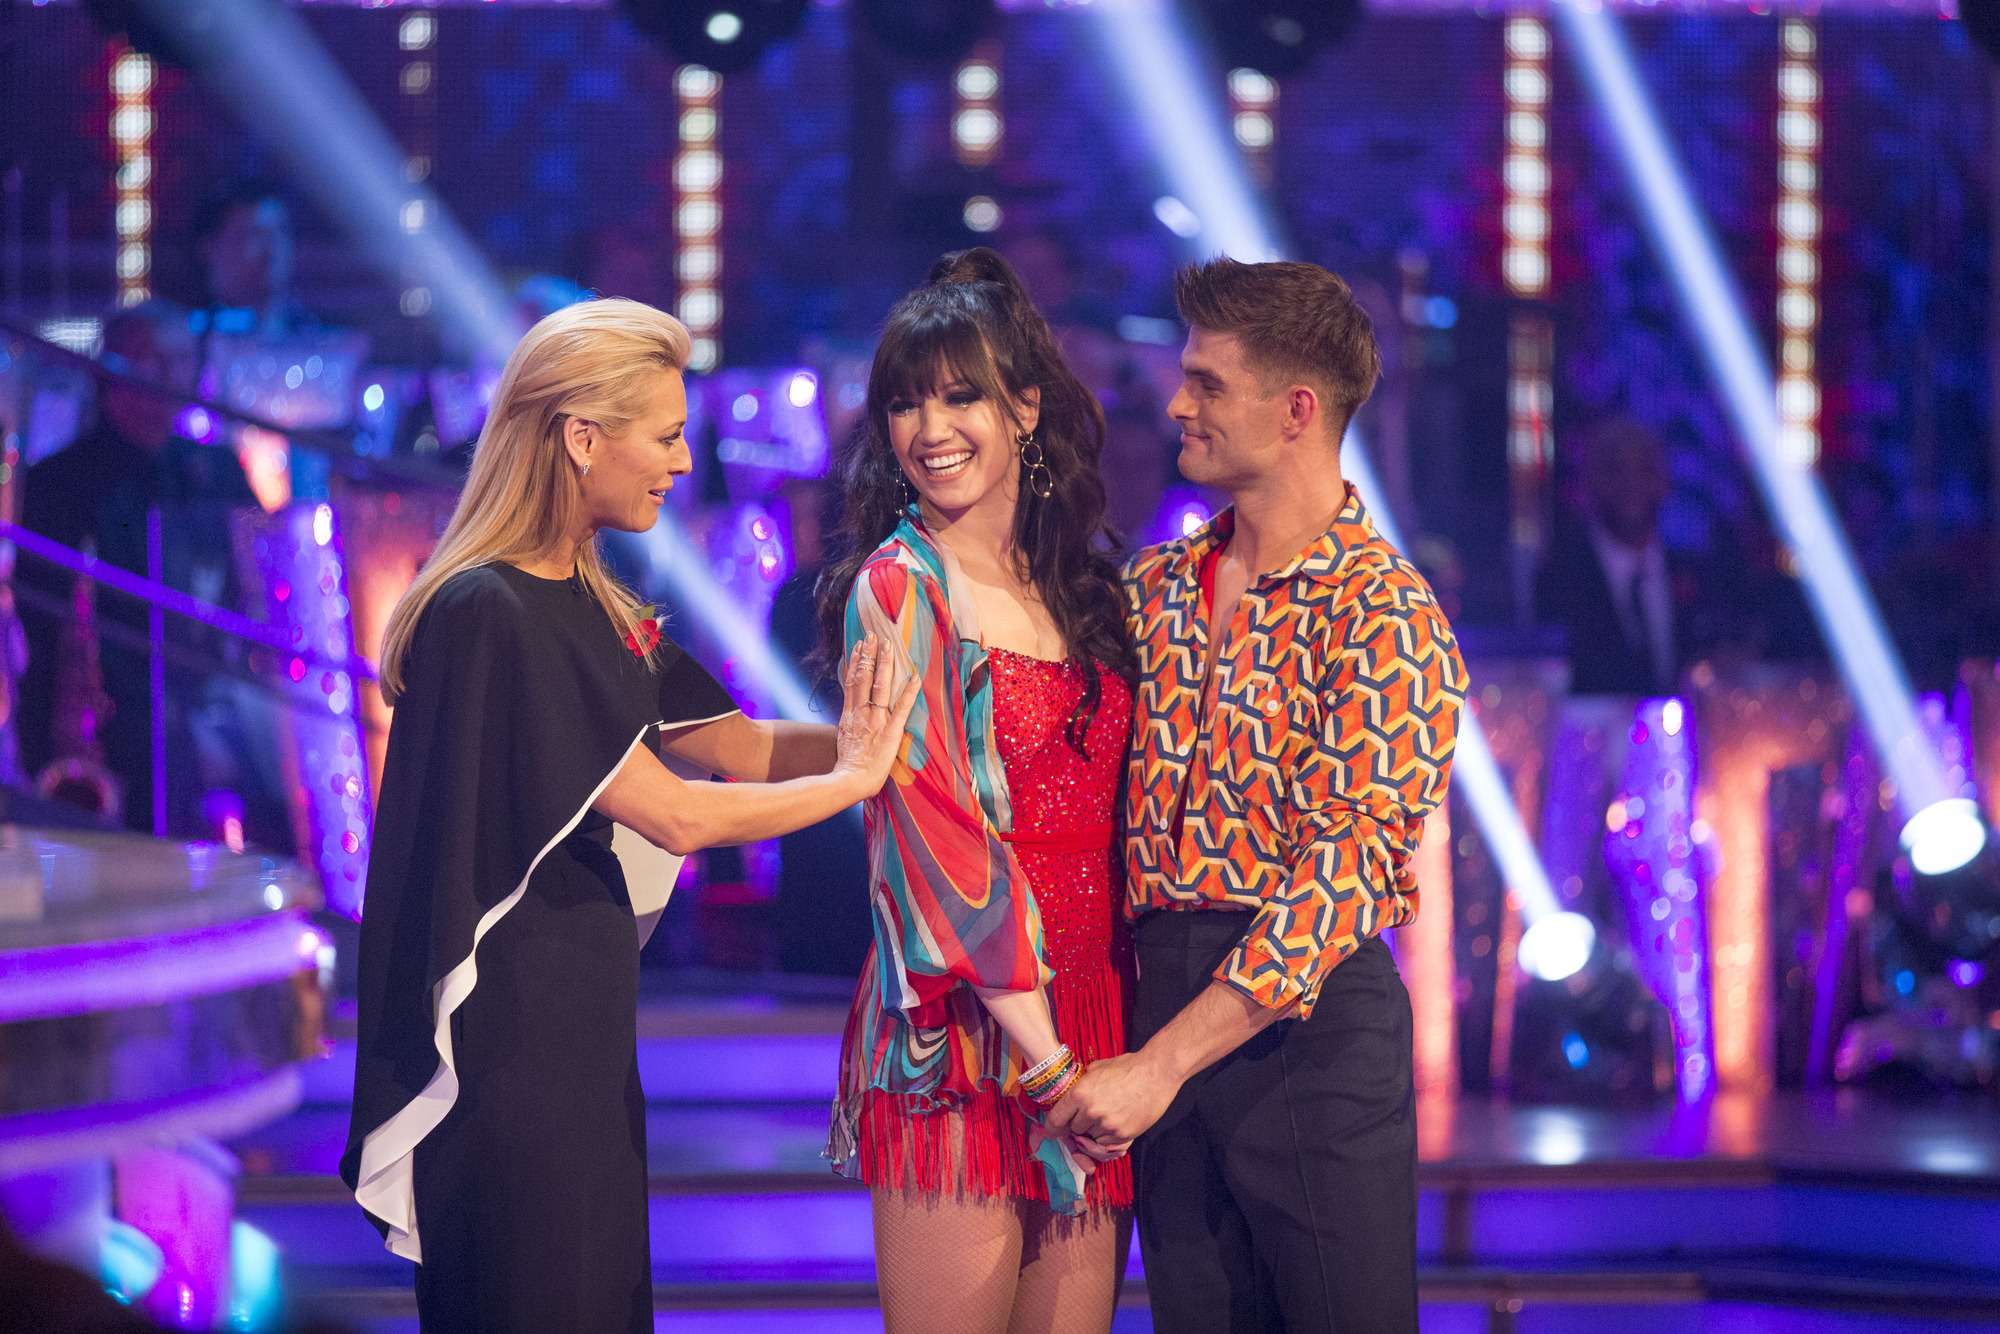 Strictly Come Dancing: Greg Rutherford keeps his cool in the bottom two – but Daisy Lowe crashes out